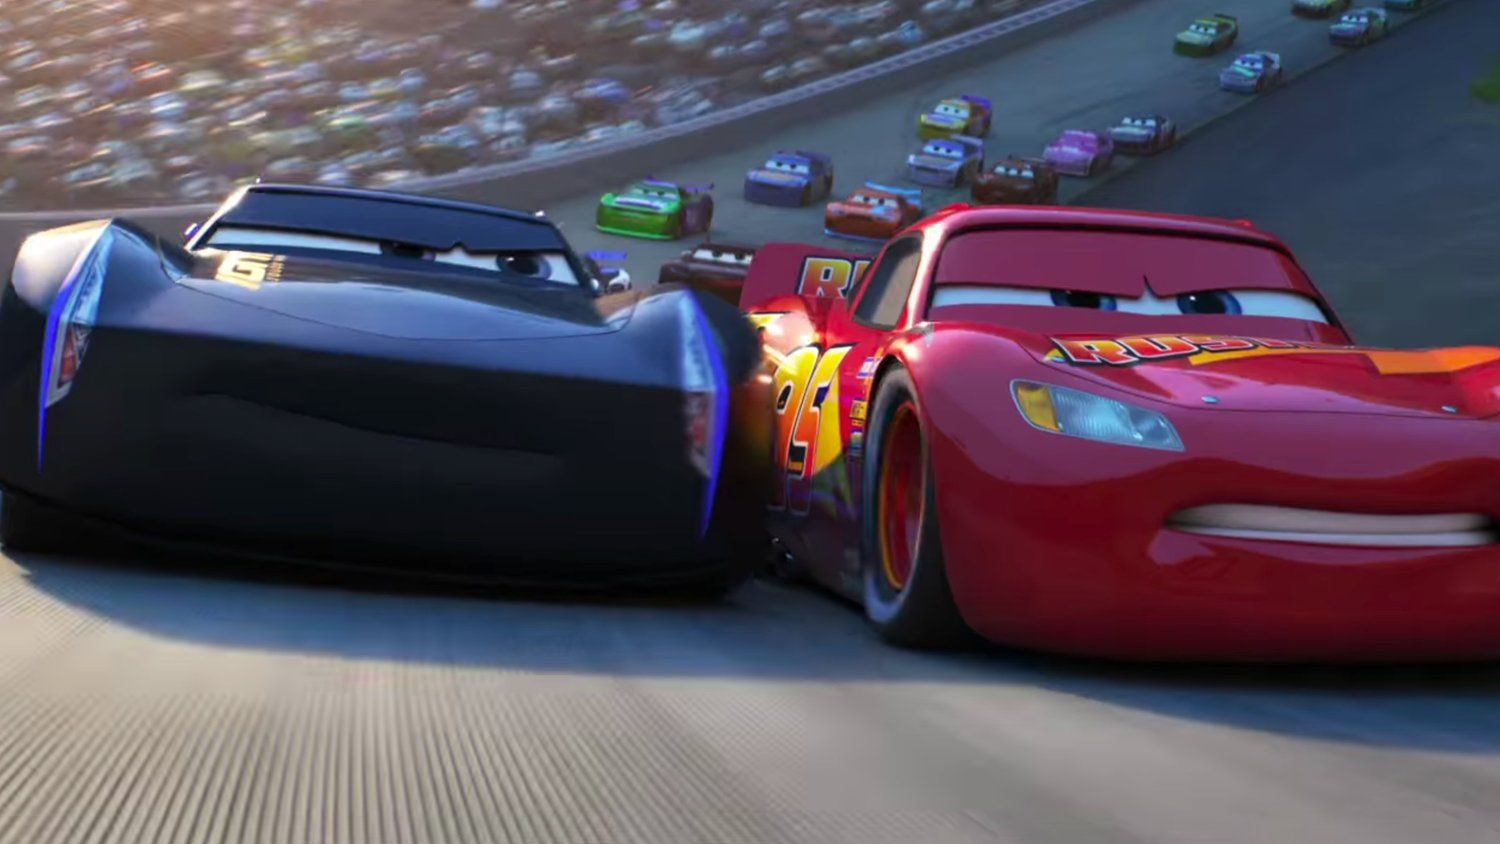 lightening mcqueen vs jackson storm in new cars 3 rivalry trailer disney everything. Black Bedroom Furniture Sets. Home Design Ideas